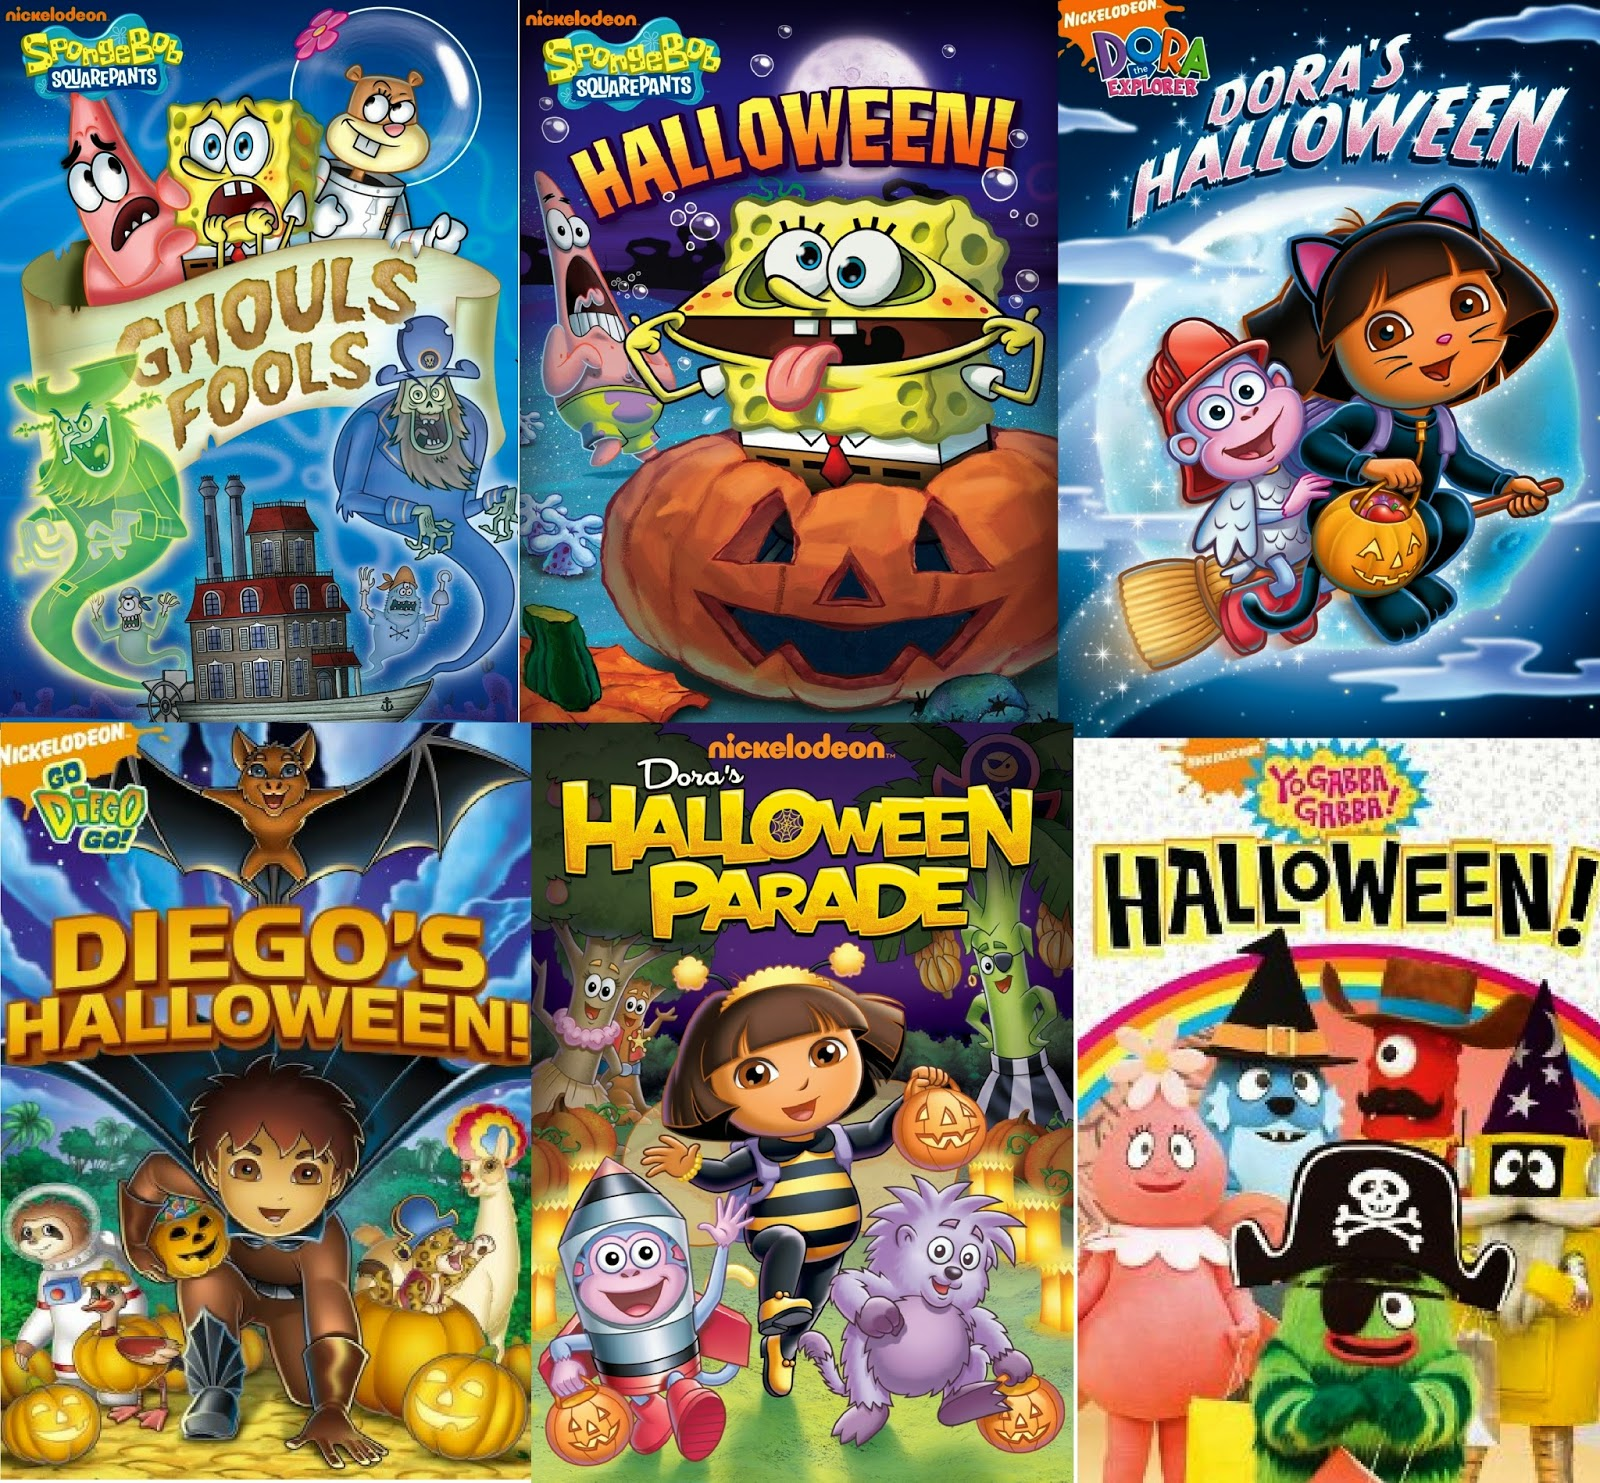 Enter the Nickelodeon Halloween Themed DVD Roundup Giveaway. Ends 10/31.